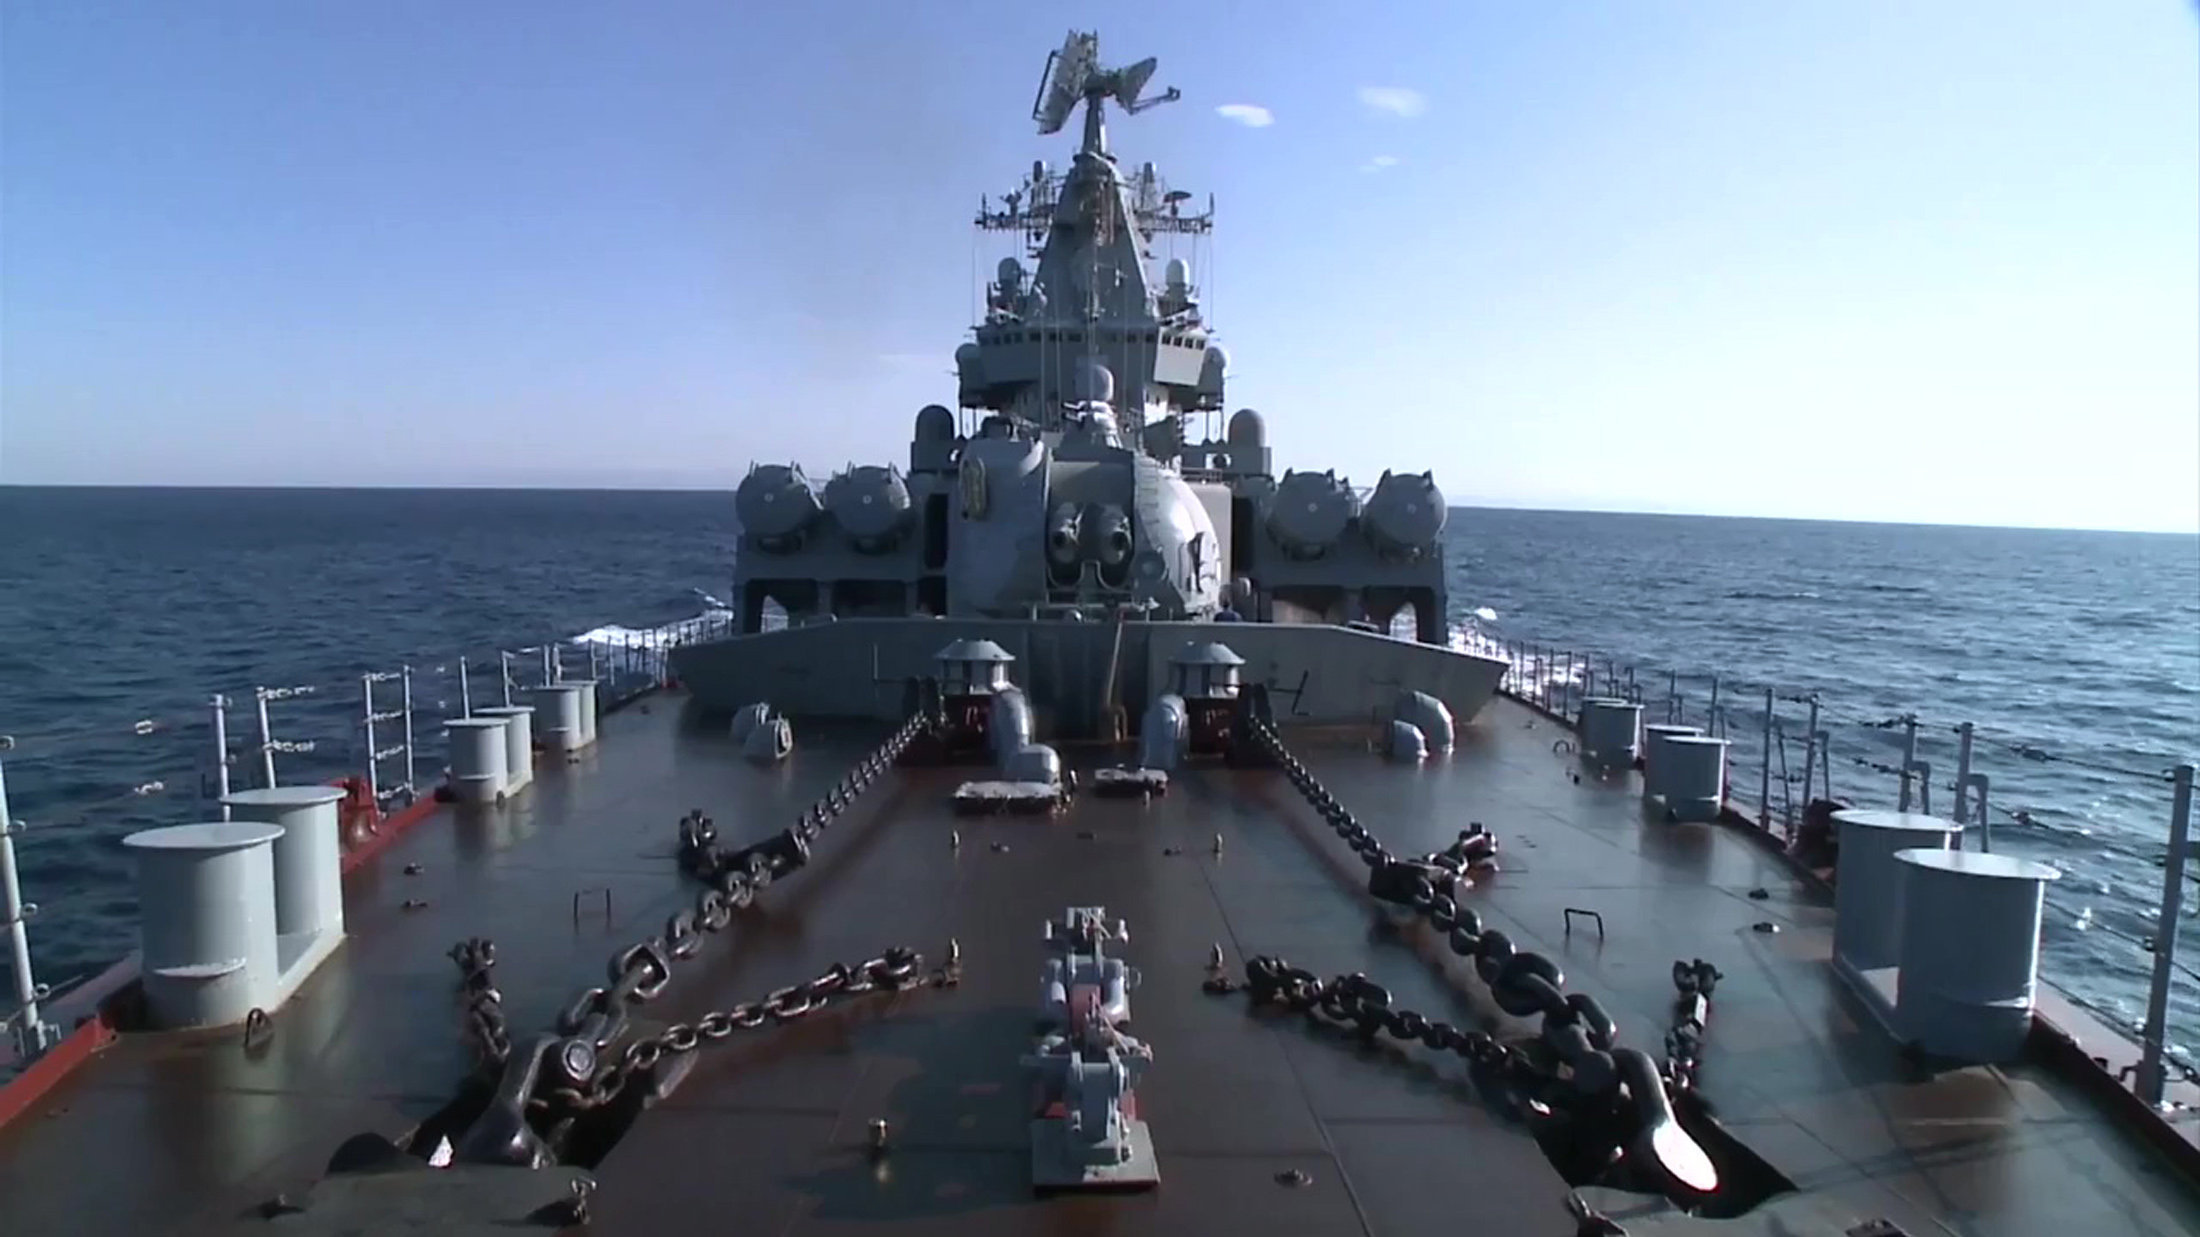 The missile cruiser Moskva has reached the coast of Latakia to perform air defense in the area